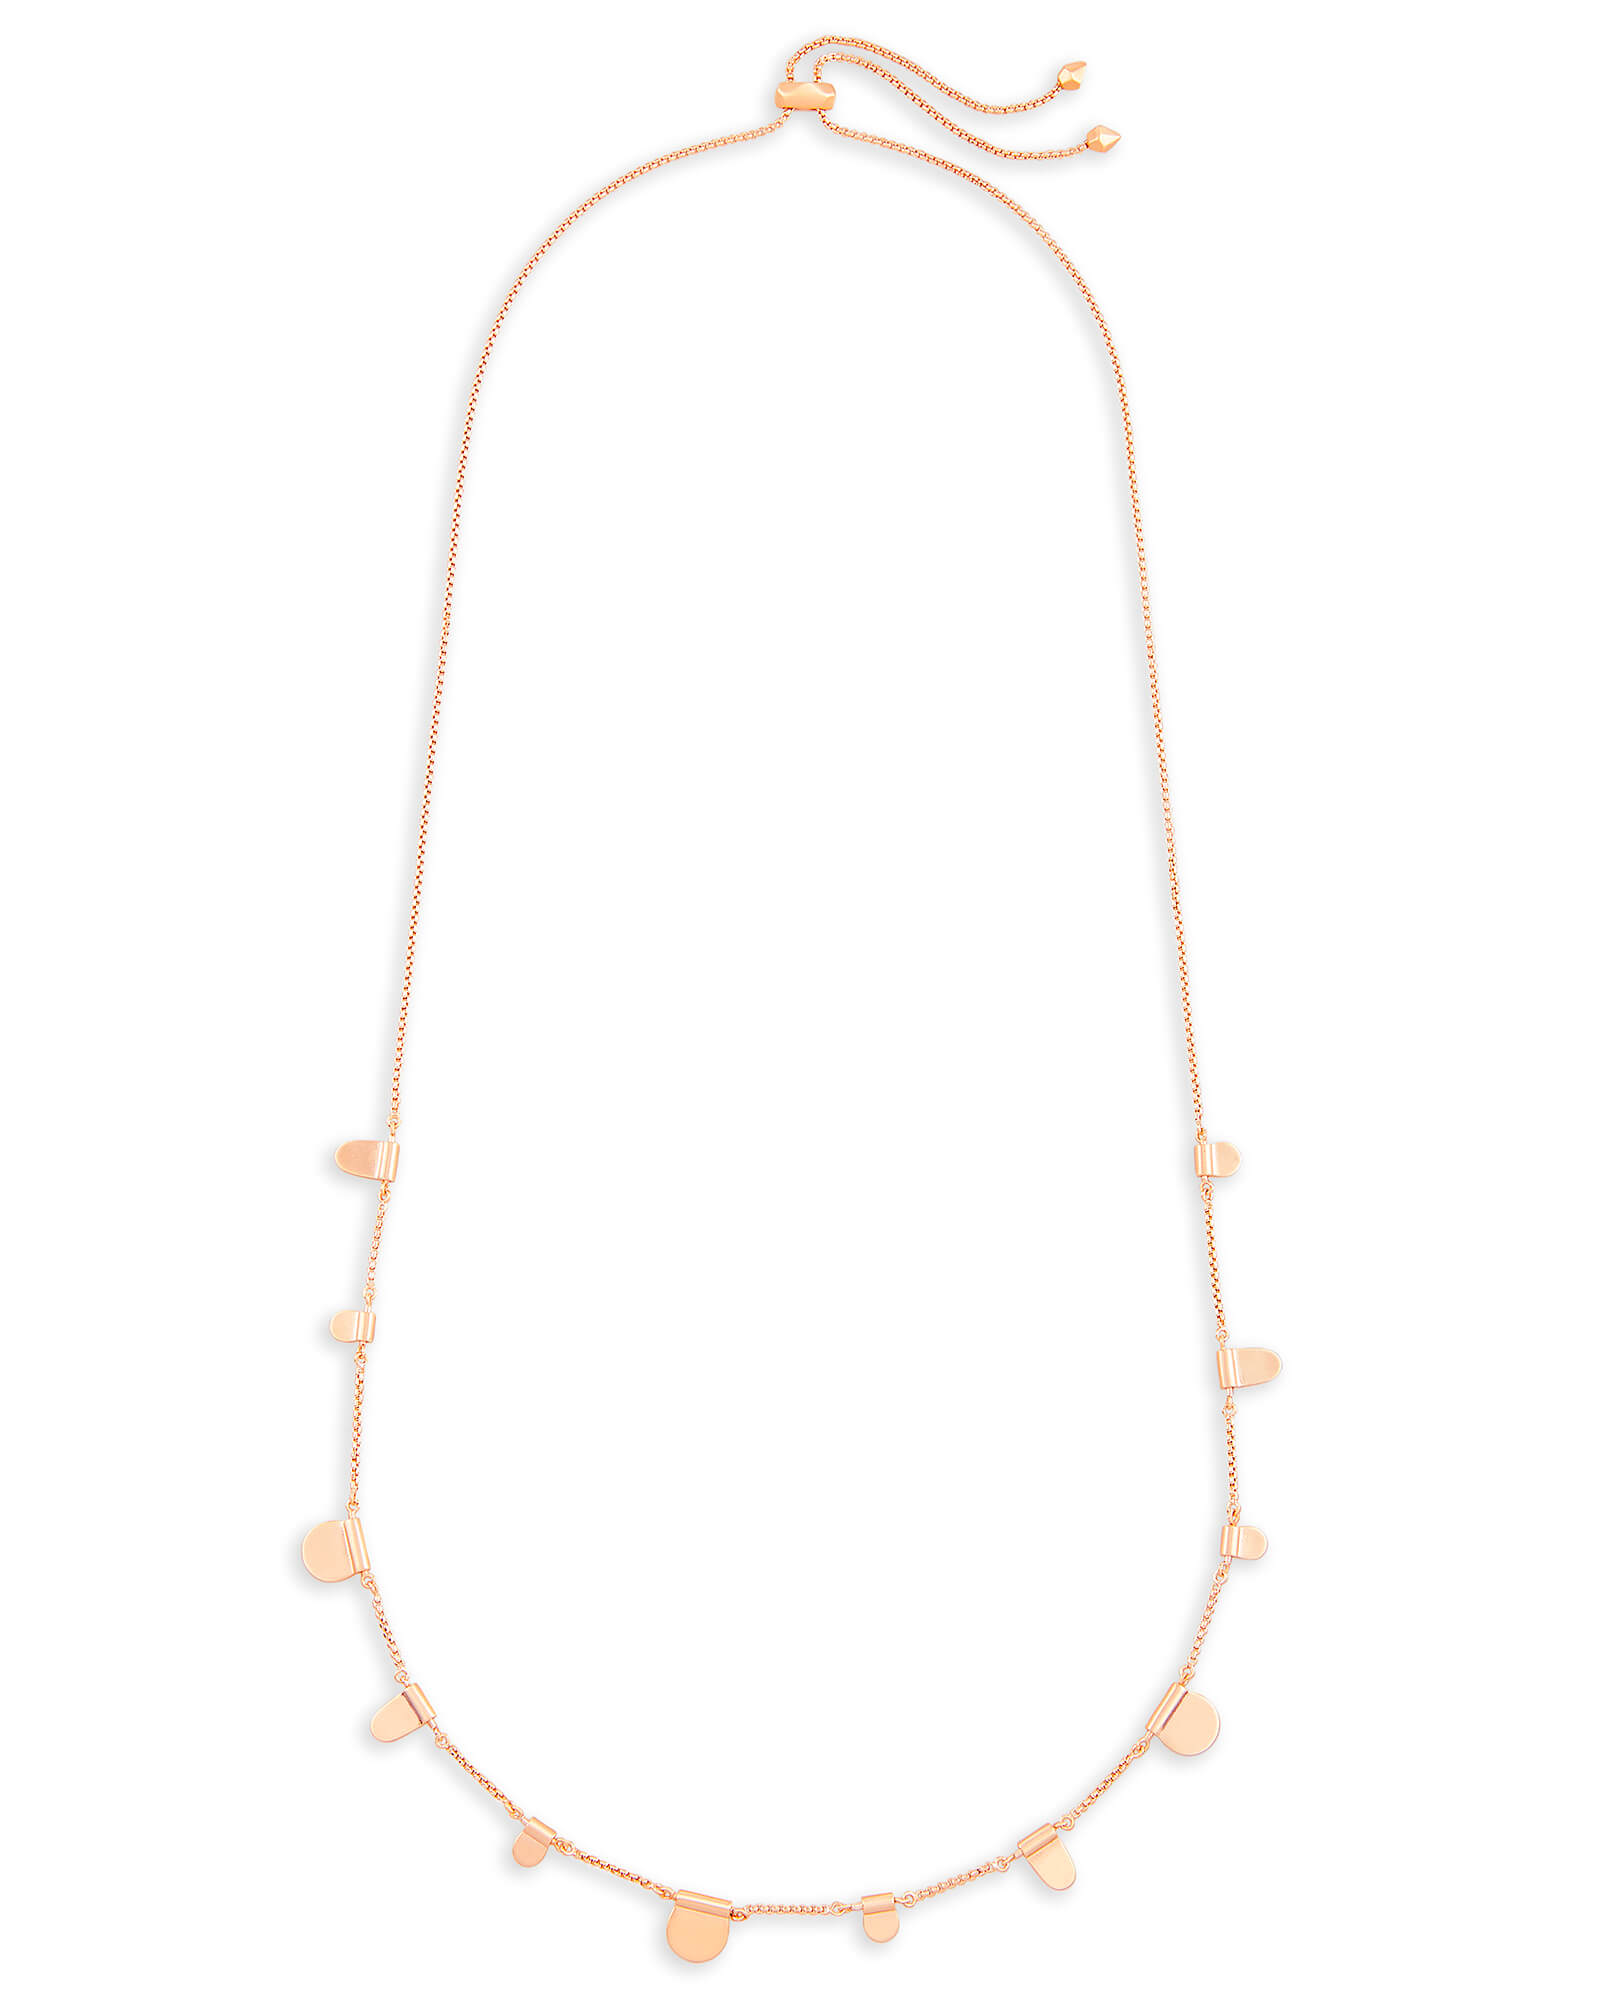 Olive Long Necklace in Rose Gold